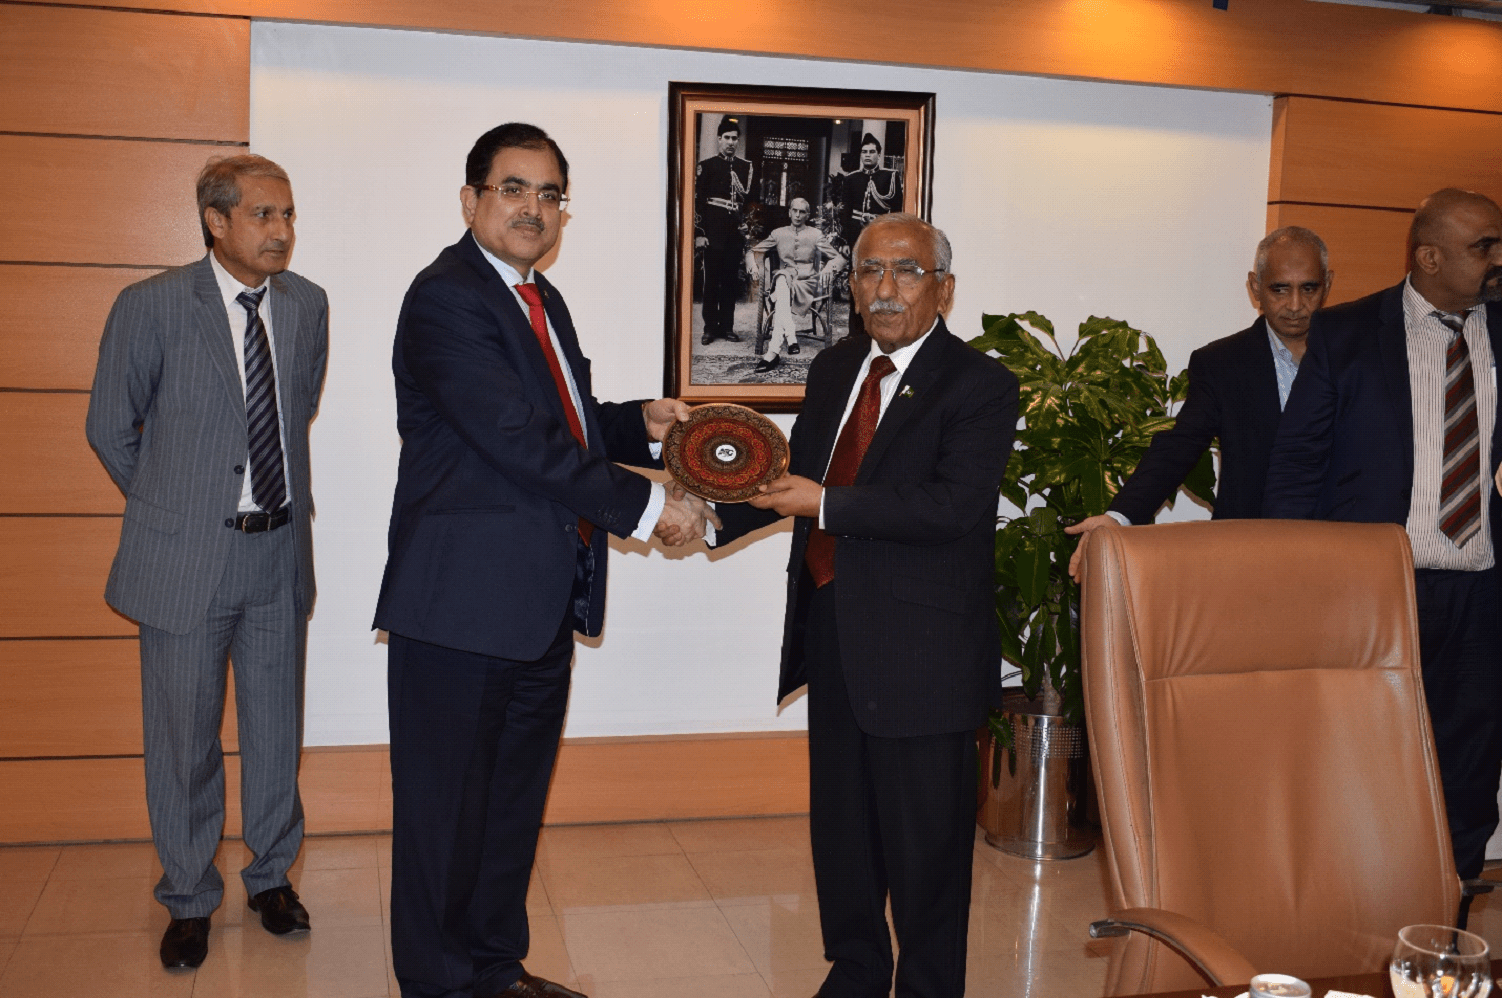 MD NTC Mr. Viqar Rashid Khan presenting memento to Minister for IT & Telecom